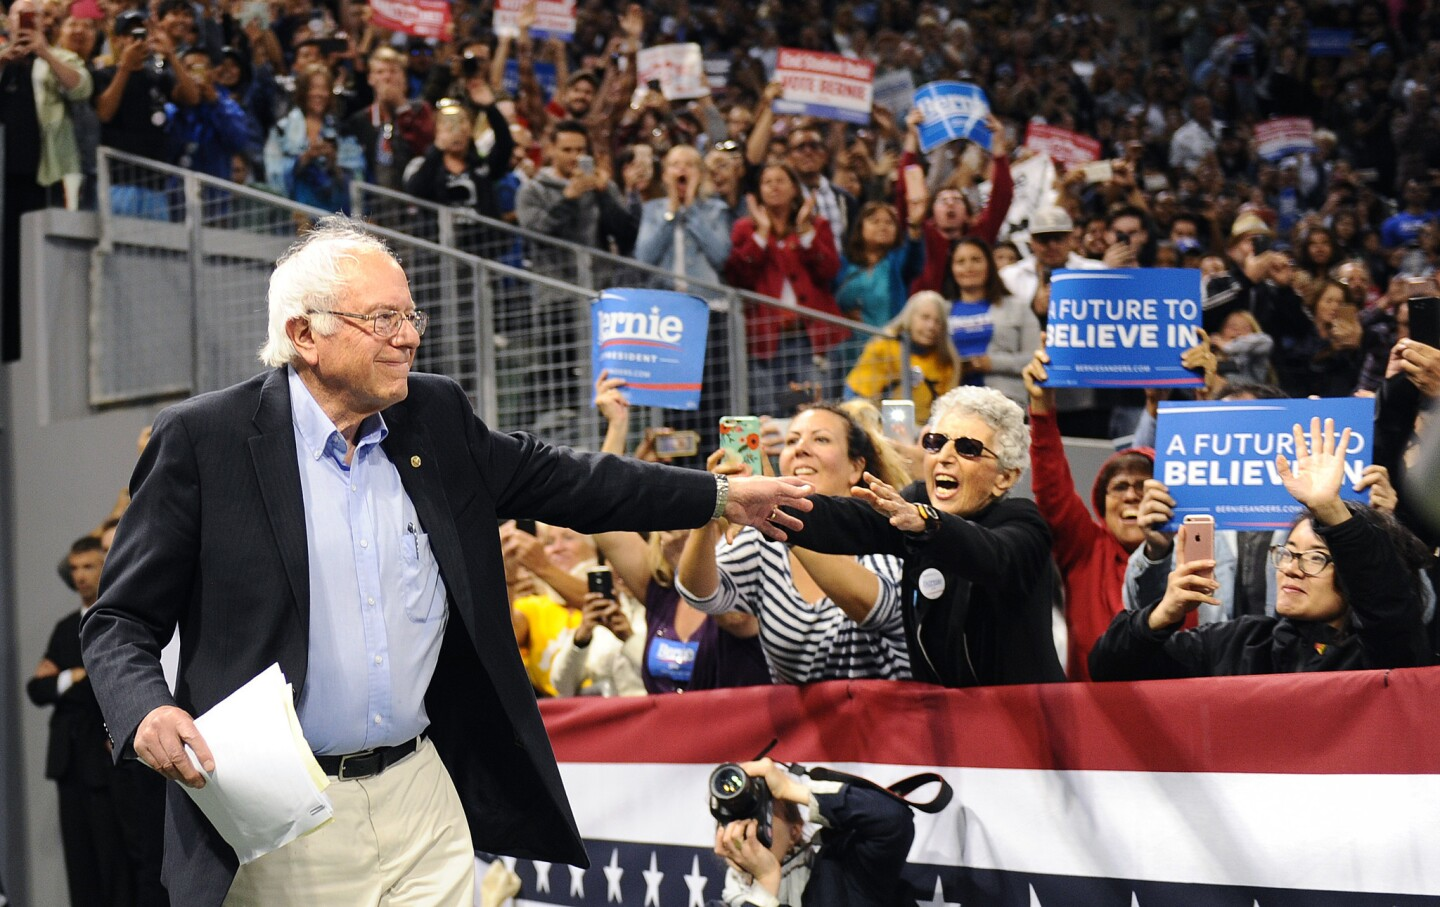 Democratic presidential candidate Bernie Sanders waves to supporters Tuesday night at StubHub Center in Carson, Calif.